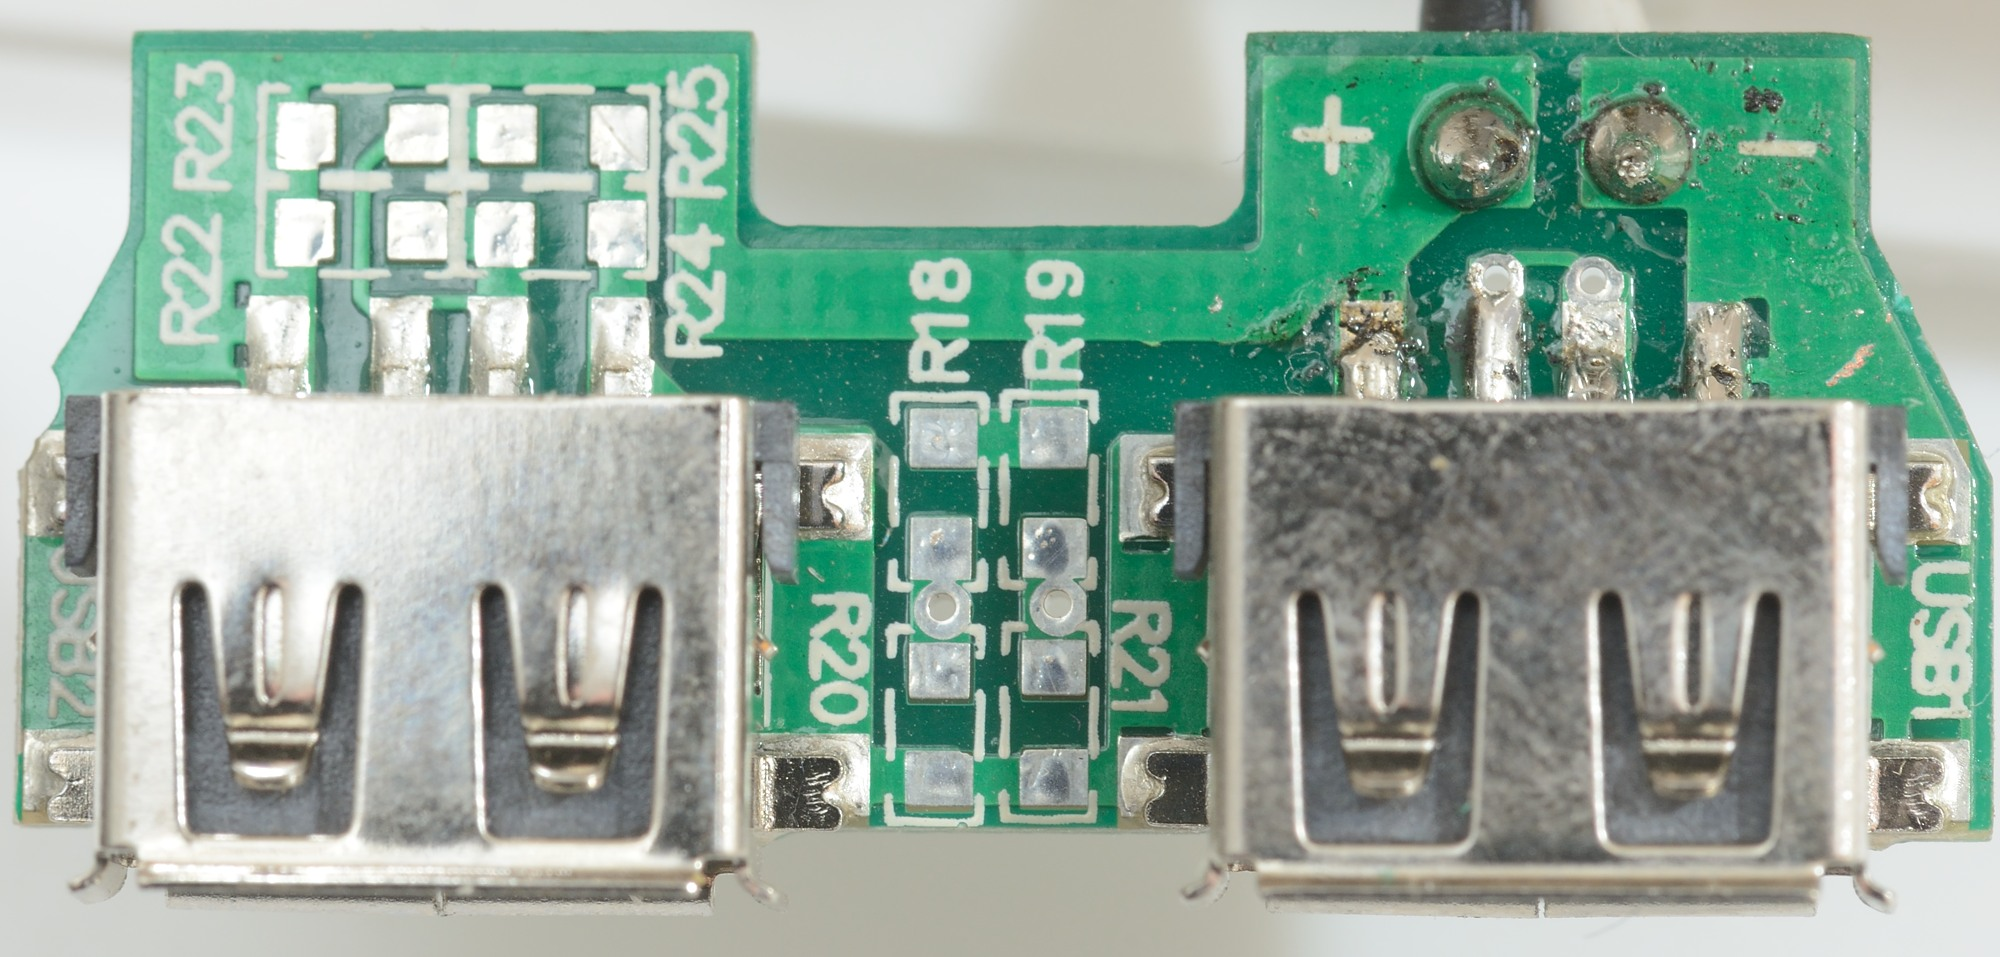 Test Of Hama Flush Socket With Two Usb Ports Circuit Board Connector The Is Only Connectors And Space For Coding Resistors These Are Not Used Data Pins Shorted On